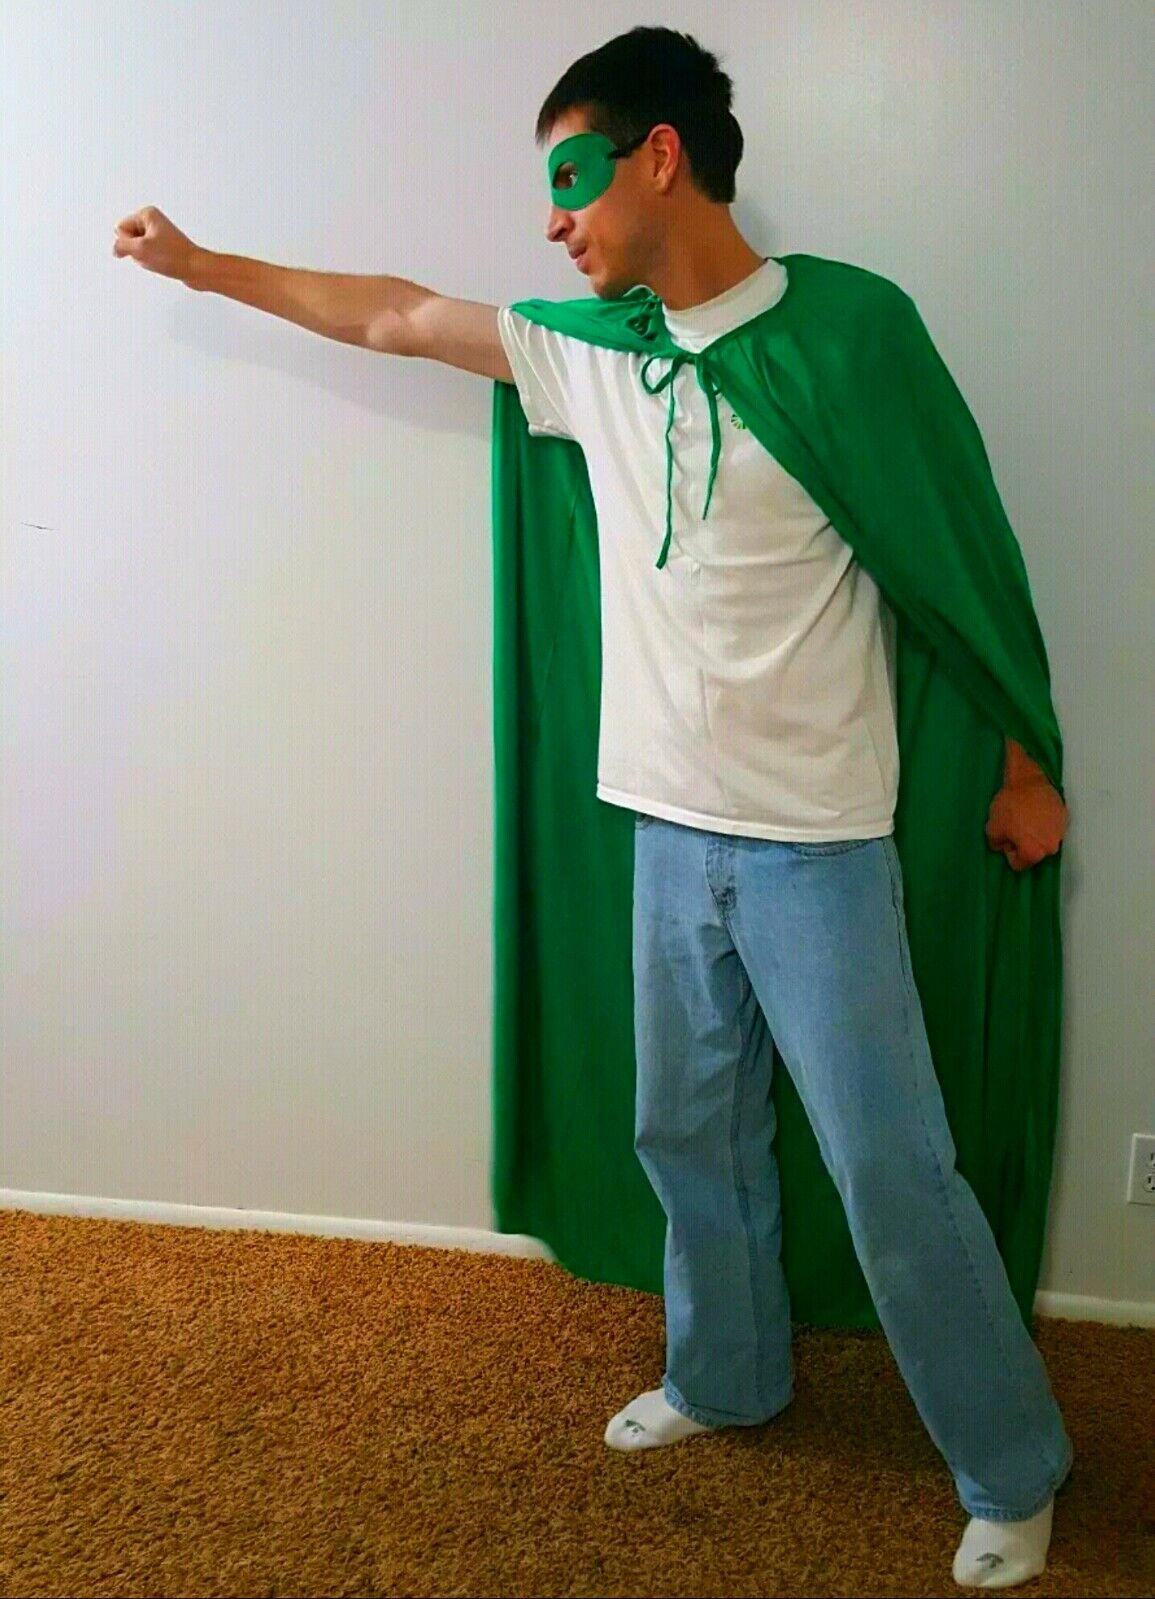 Everyday Super Hero Gear SET  Includes Green Mask, Cape, and T-shirt Size Medium